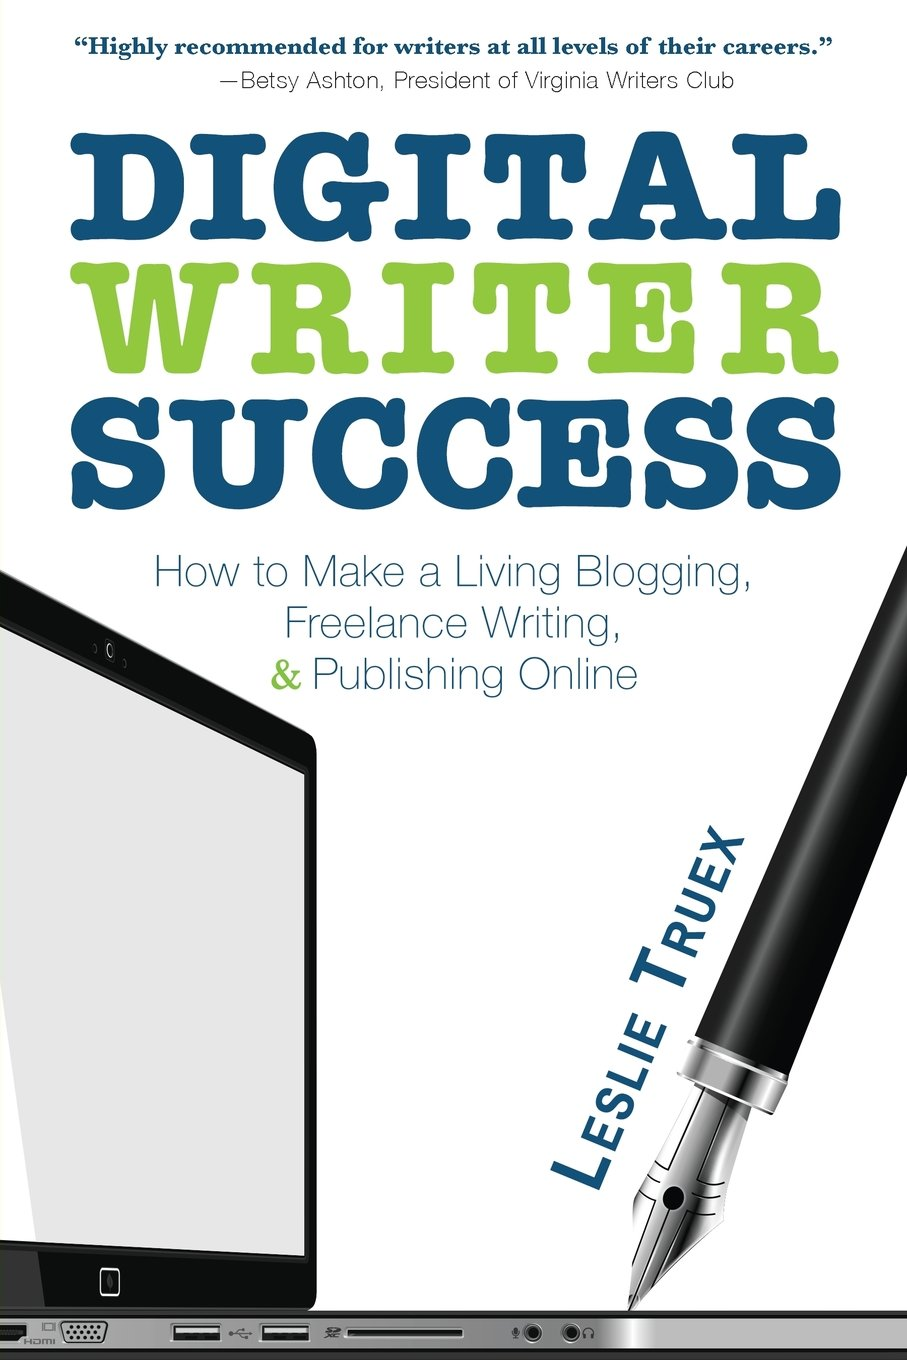 digital writer success how to make a living blogging lance digital writer success how to make a living blogging lance writing publishing online leslie truex 9781633932142 com books